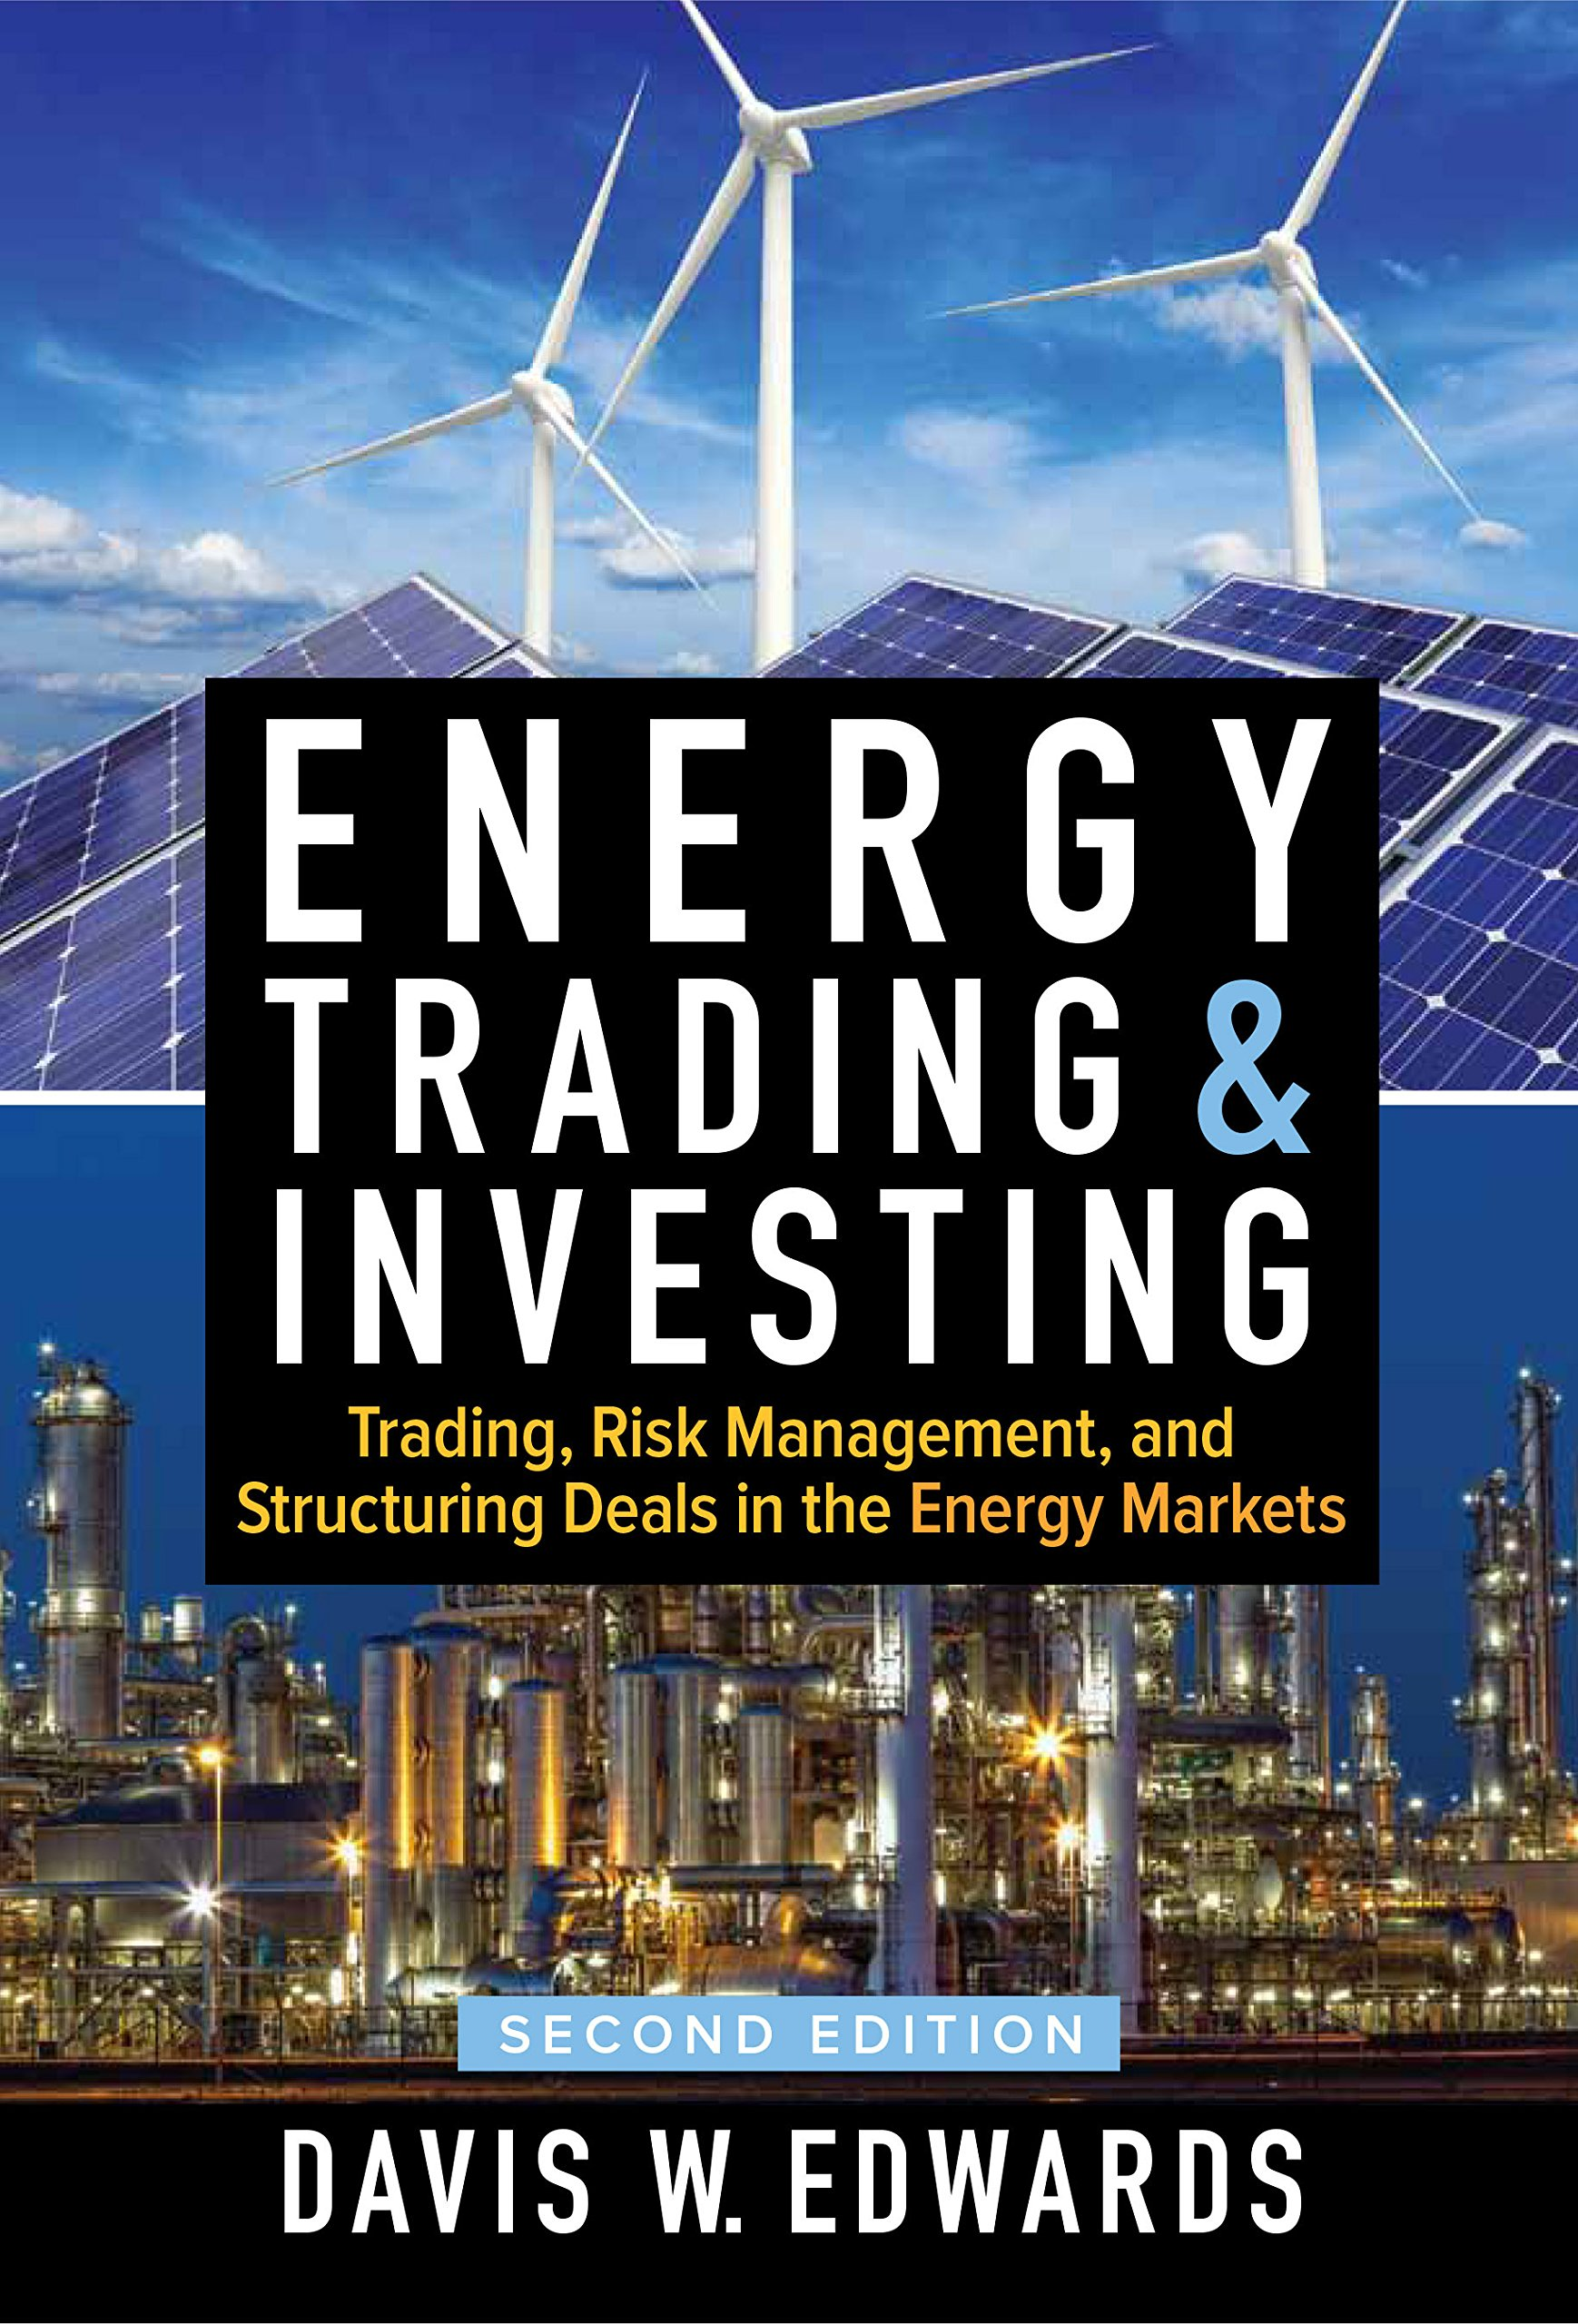 Energy Trading and Investing: Trading, Risk Management, and Structuring Deals in the Energy Market, Second Edition di Davis W. Edwards